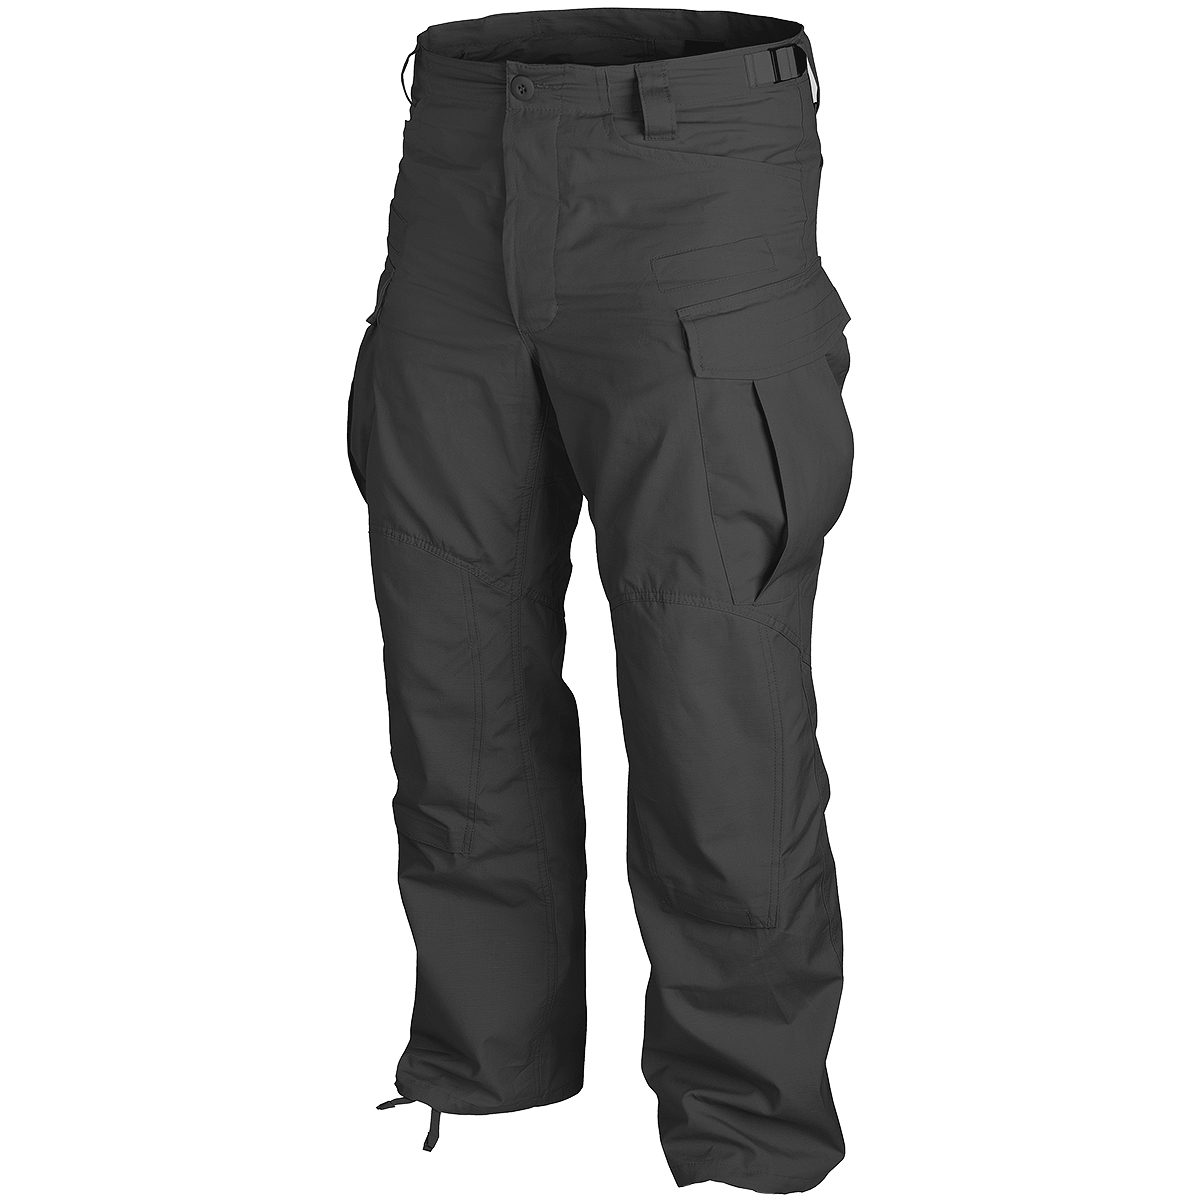 HELIKON TACTICAL SFU MILITARY COMBAT TROUSERS MENS SECURITY POLICE PANTS BLACK